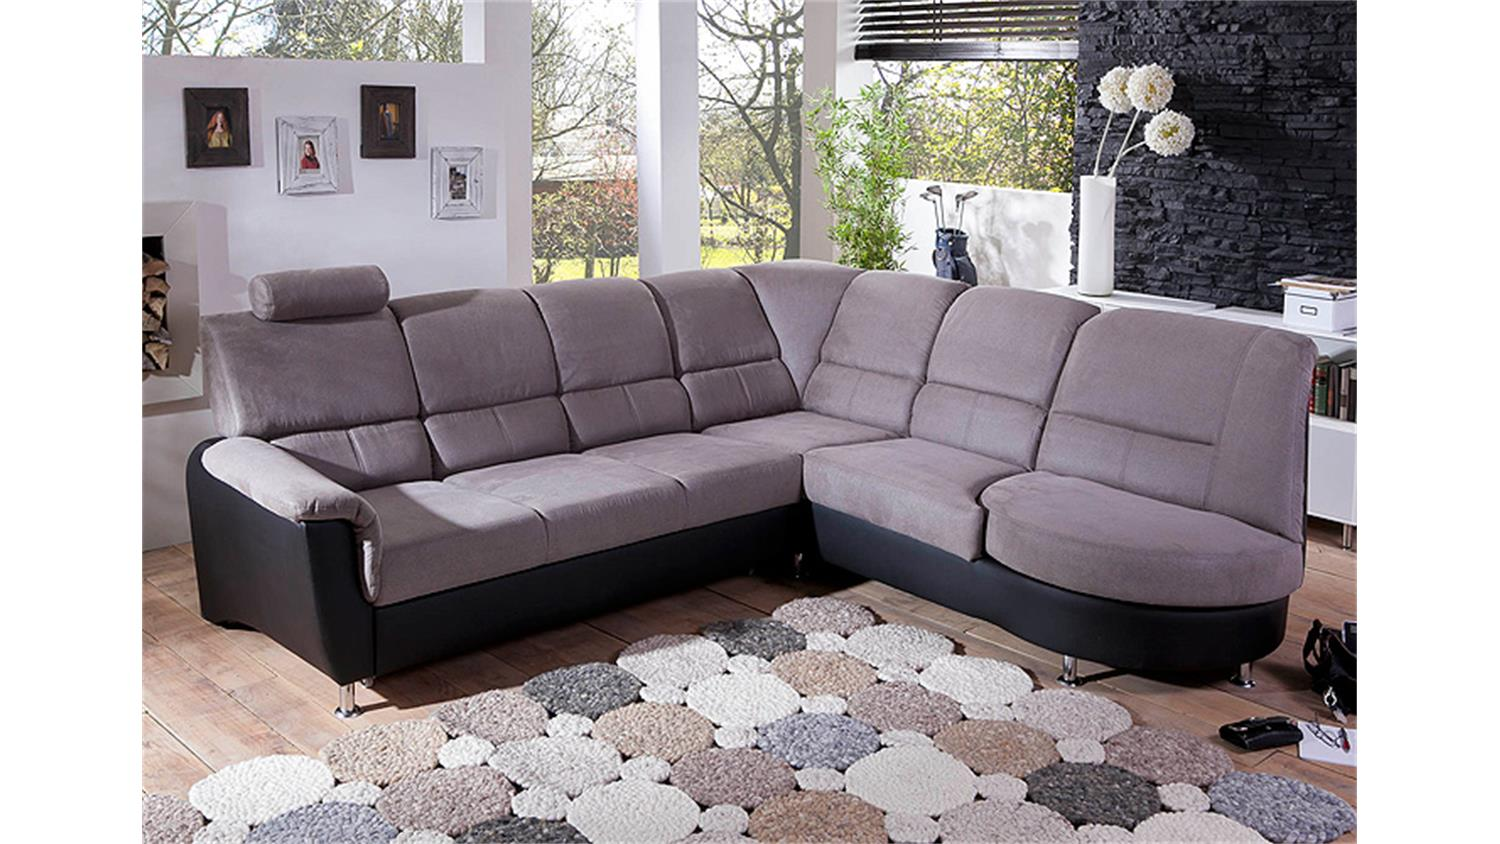 ecksofa pisa eckgarnitur l sofa grau schwarz bettfunktion kopfst tze. Black Bedroom Furniture Sets. Home Design Ideas